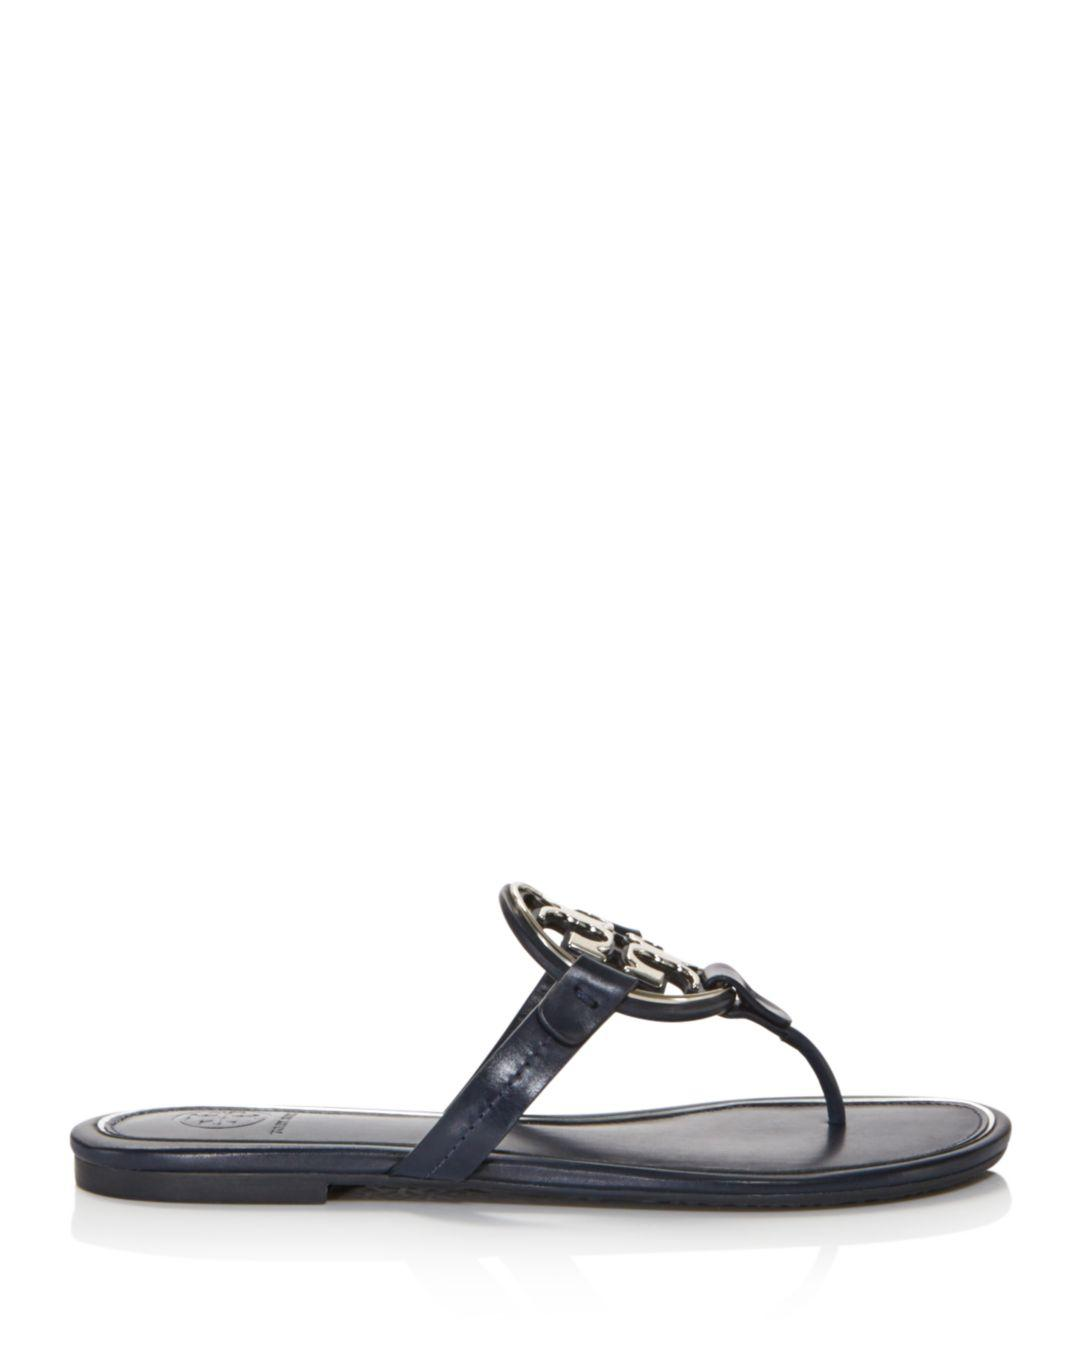 909533ce0c39 Lyst - Tory Burch Women s Metal Miller Leather Thong Sandals in Blue